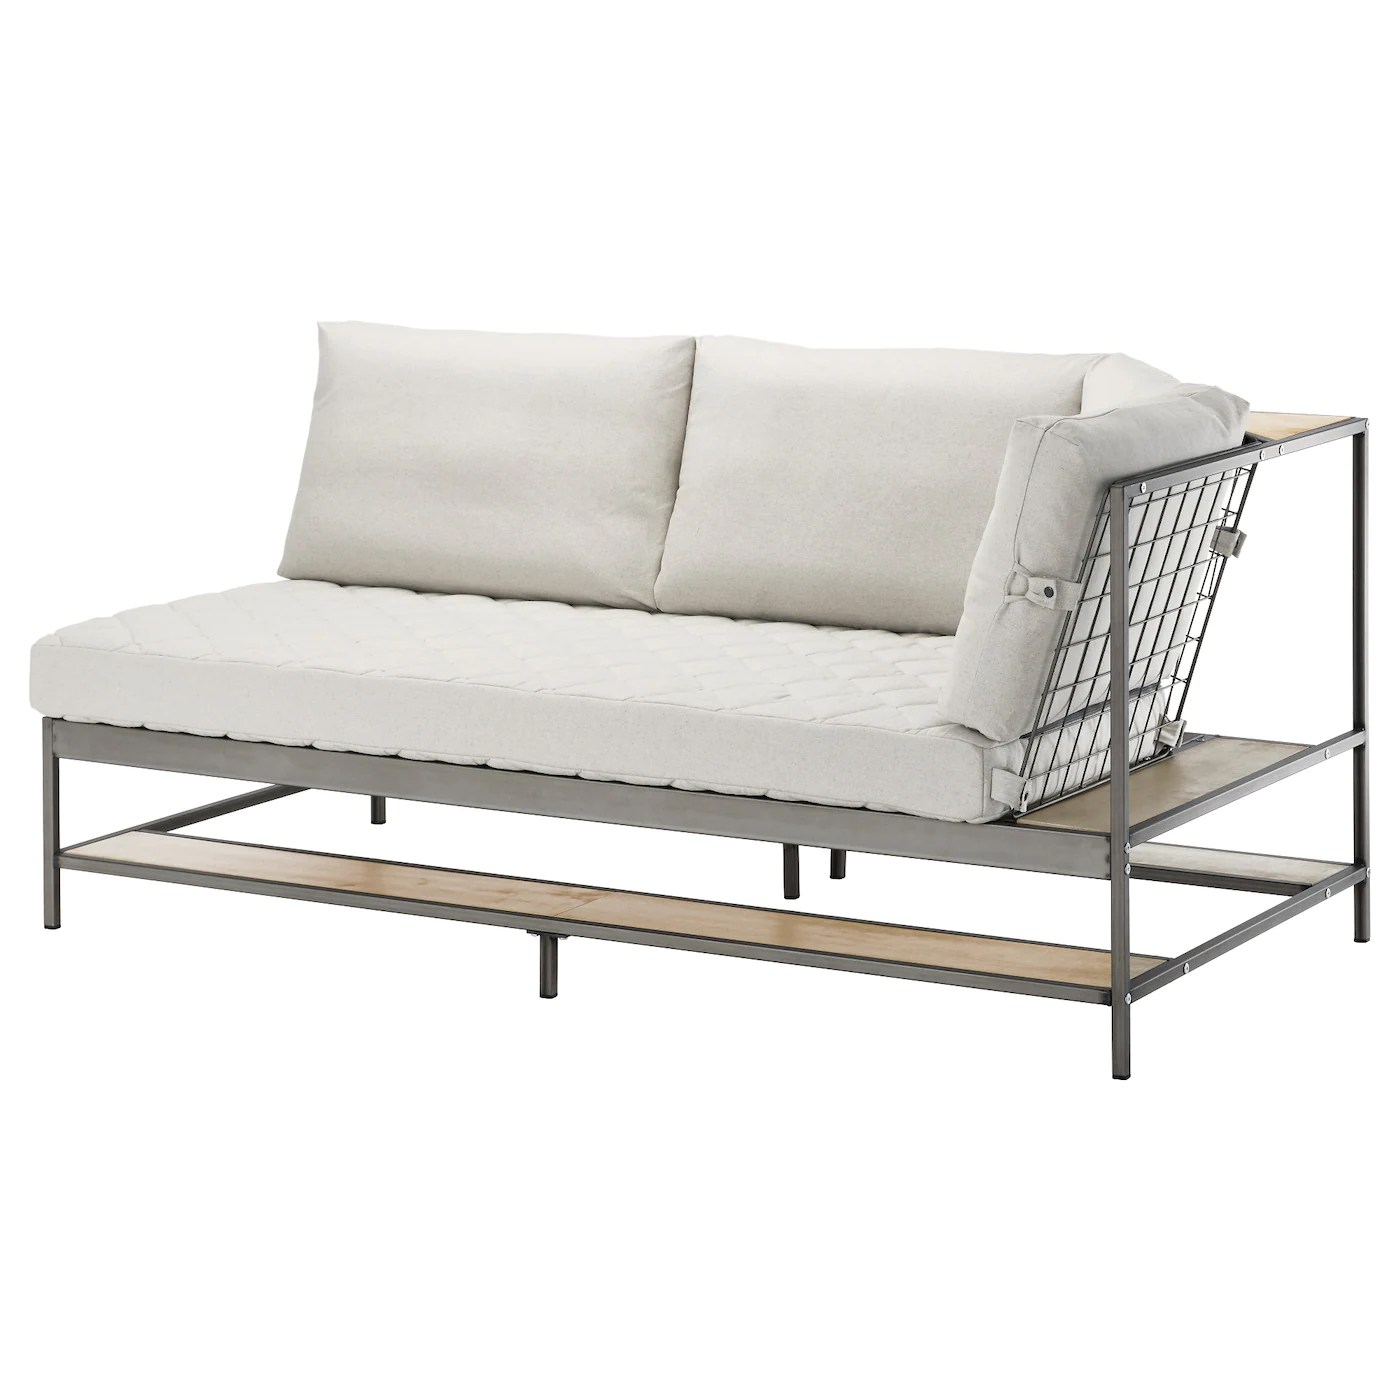 Couch Ikea Ekebol Three Seat Sofa Katorp Natural